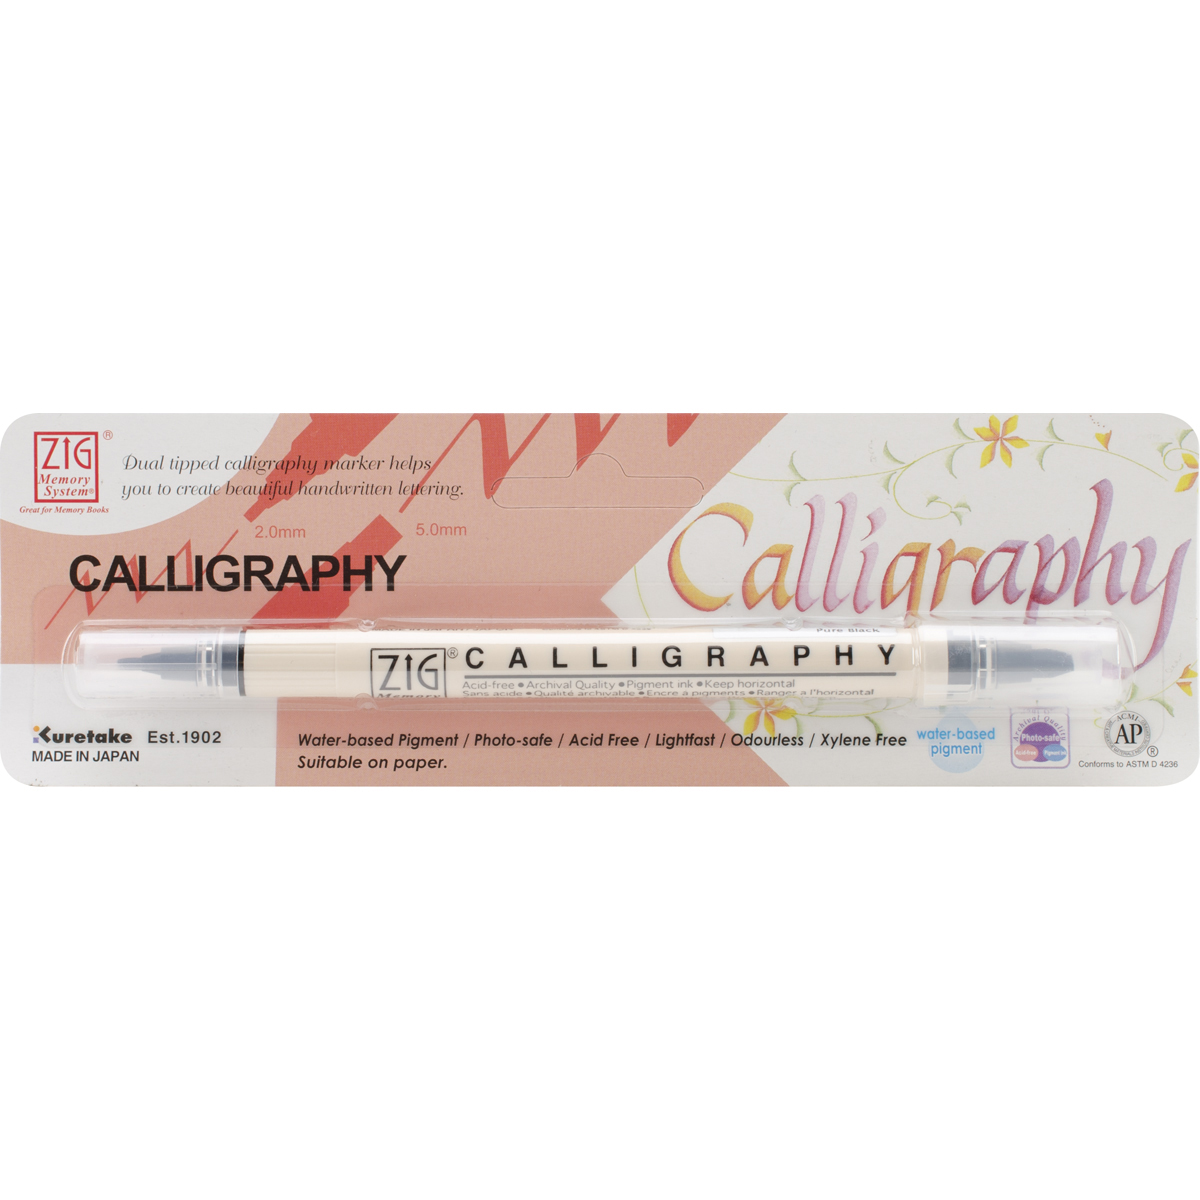 Zig Memory System Calligraphy Dual-Tip Marker (Packaged)-Pure Black - image 2 of 2